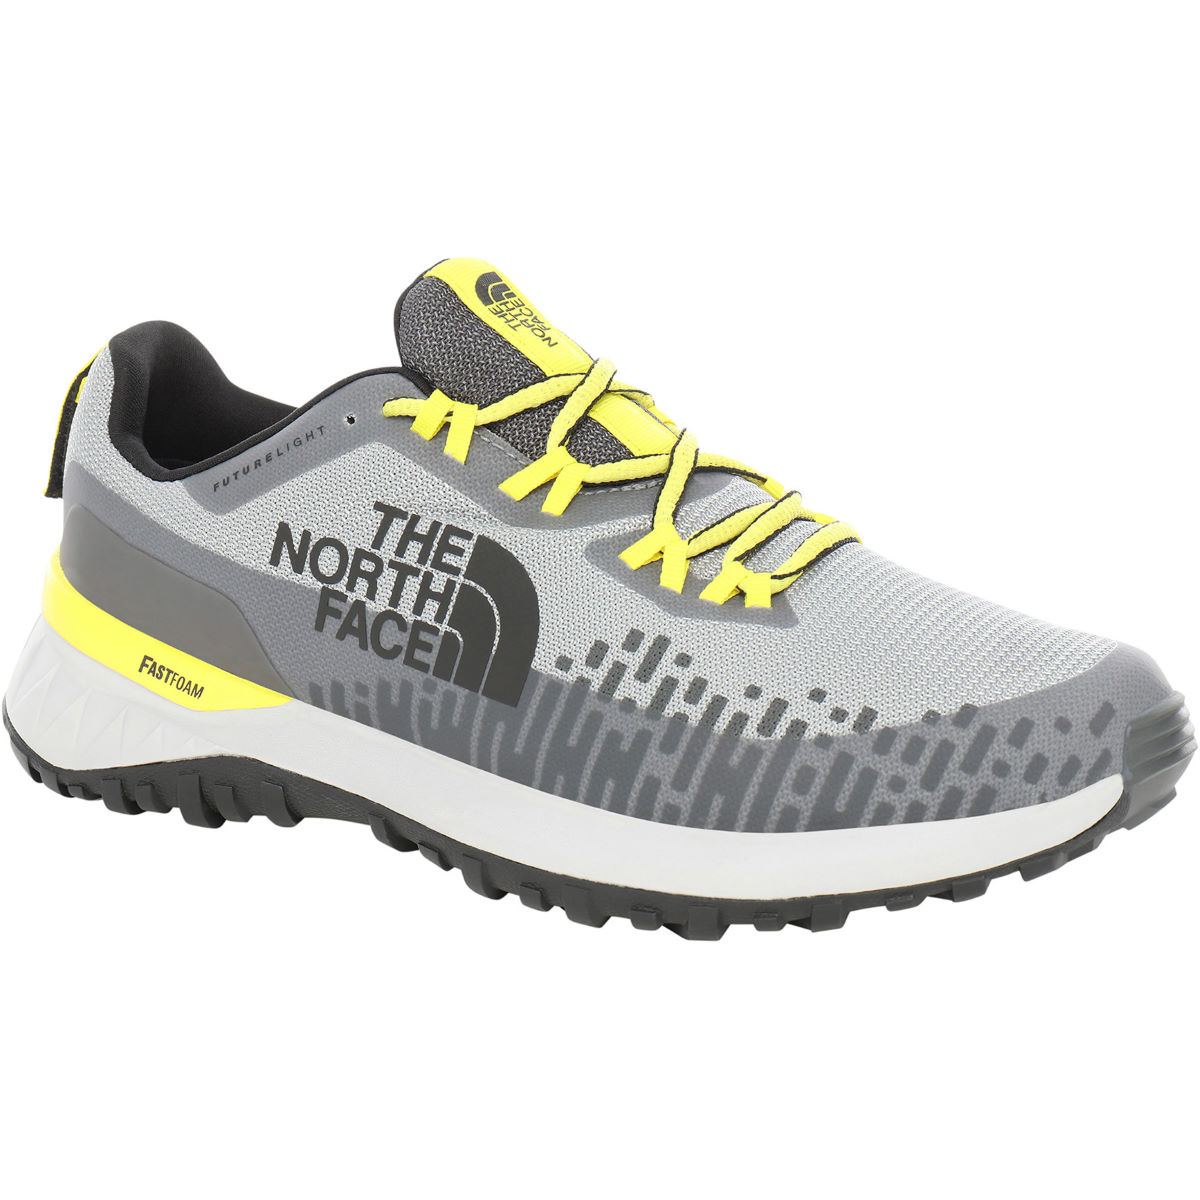 The North Face The North Face Ultra Traction FutureLight™ Trail Shoes   Trail Shoes